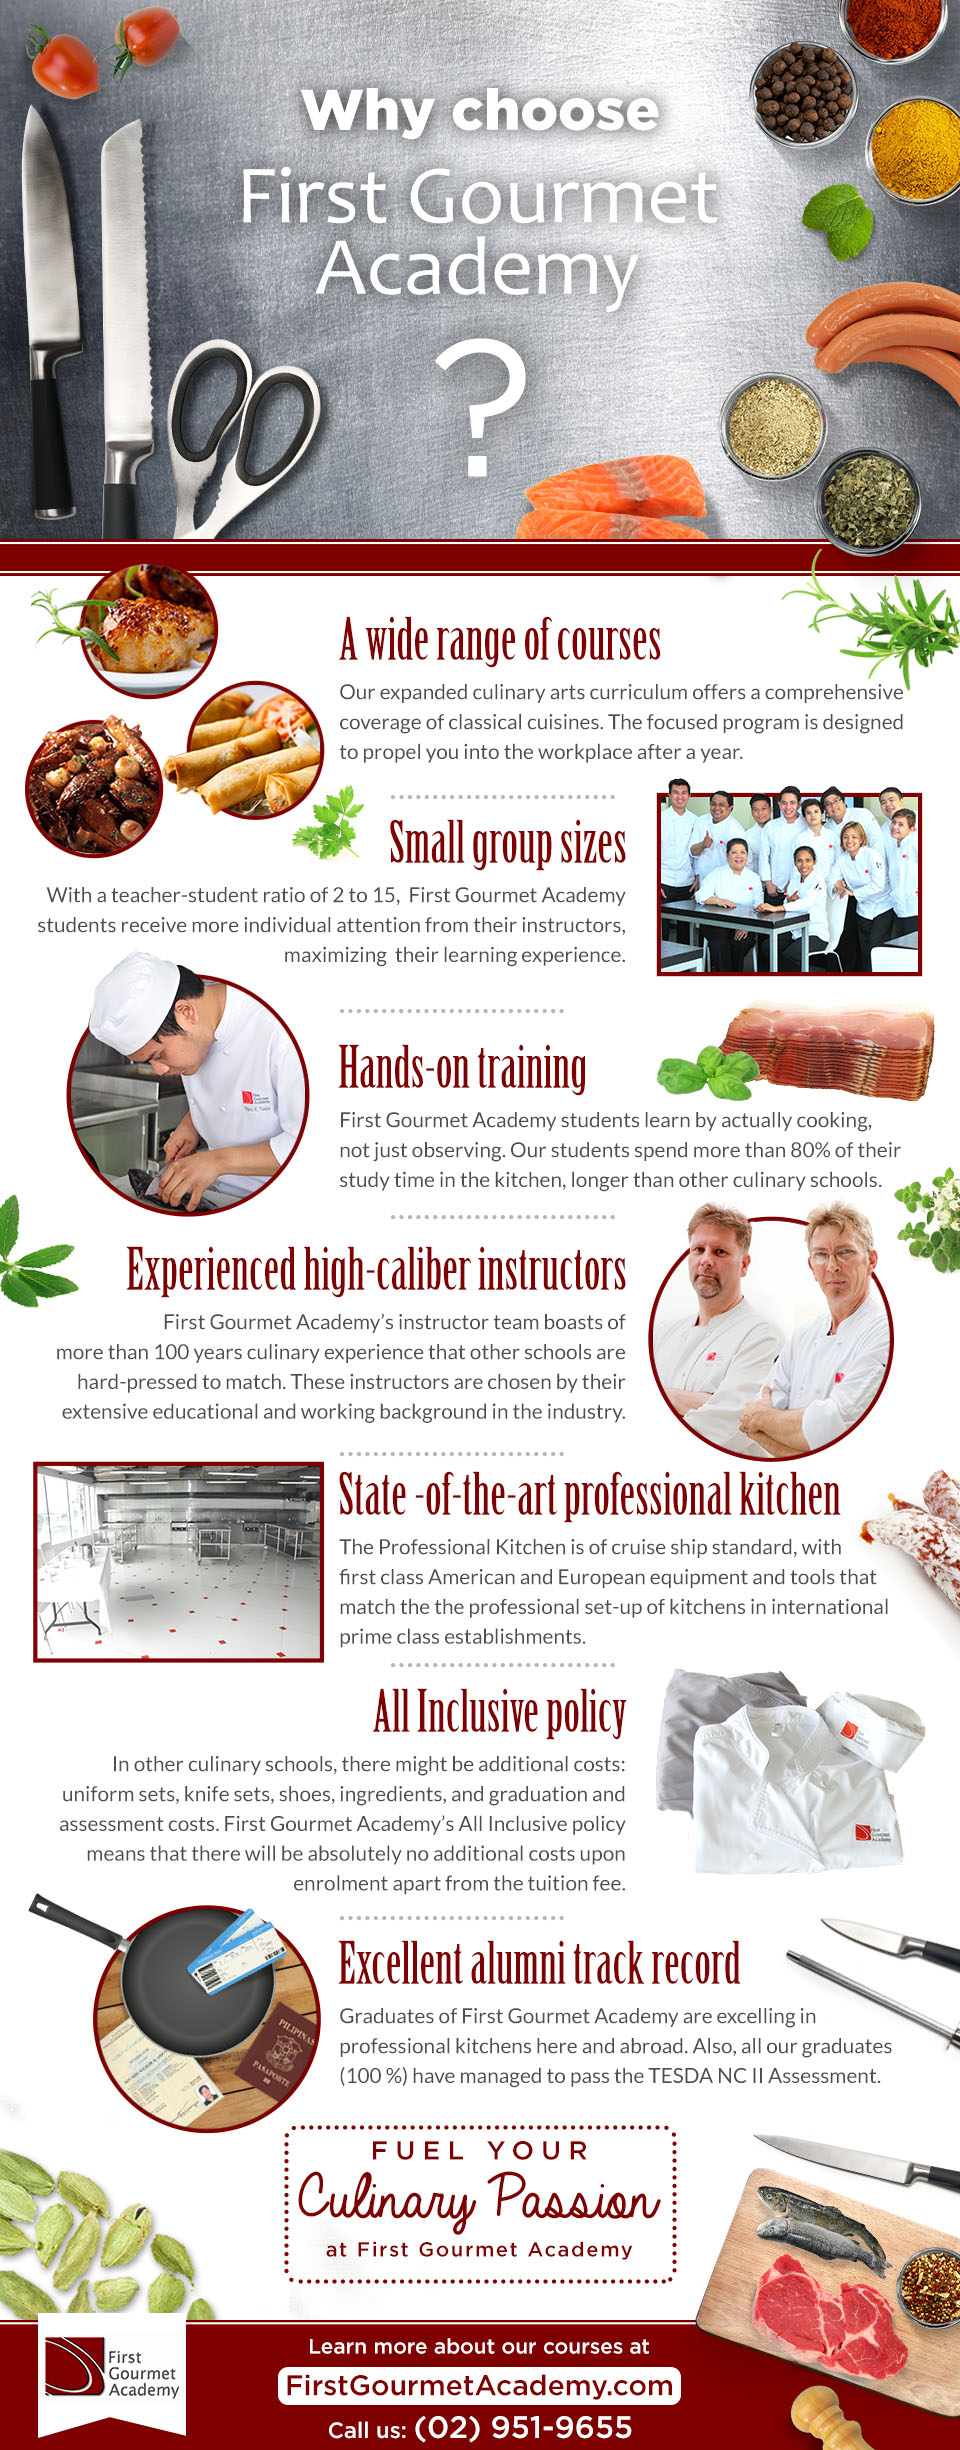 This is an infographic showing why you should choose First Gourmet Academy over other culinary schools in the Philippines.